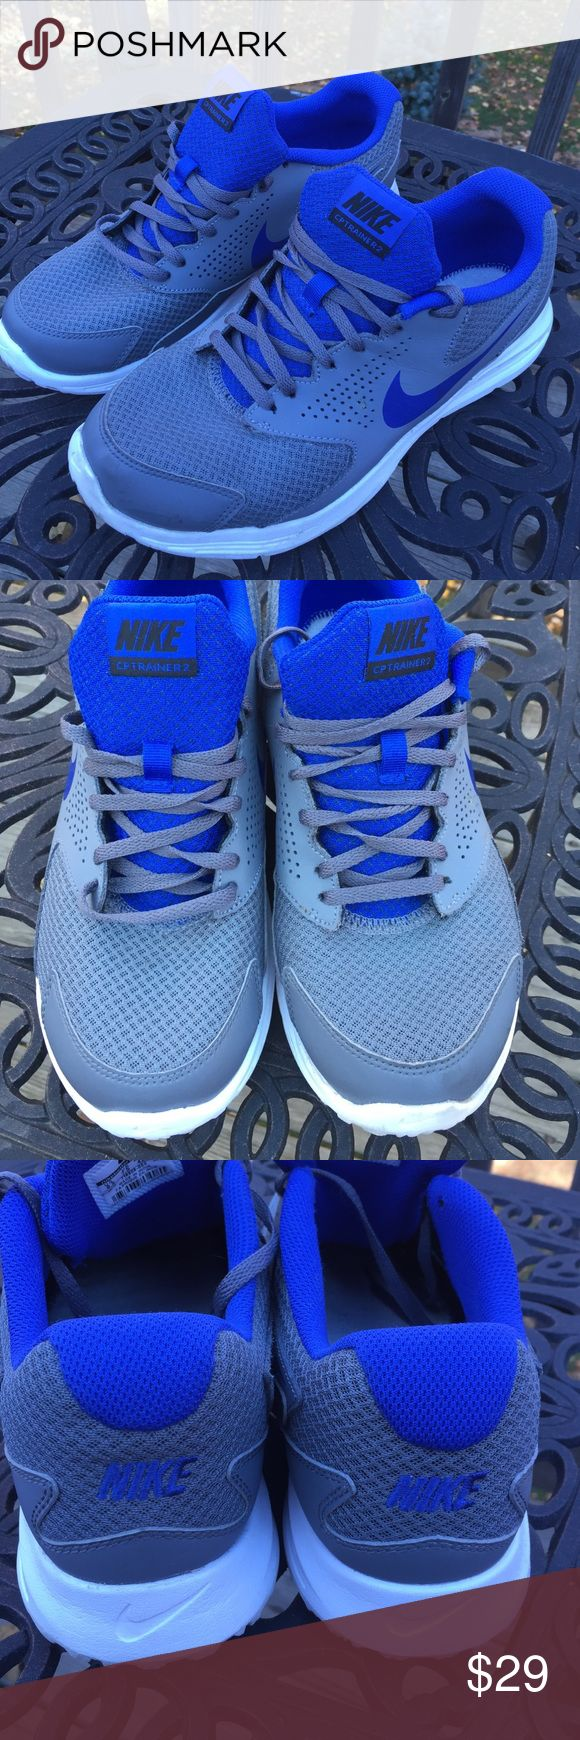 Nike Men's CP Trainer 2 Grey/Blue Sneakers 8.5 Nike Men's CP Trainer 2 sneakers. Size 8.5. Grey and Royal Blue. Really good condition. No trades Nike Shoes Athletic Shoes